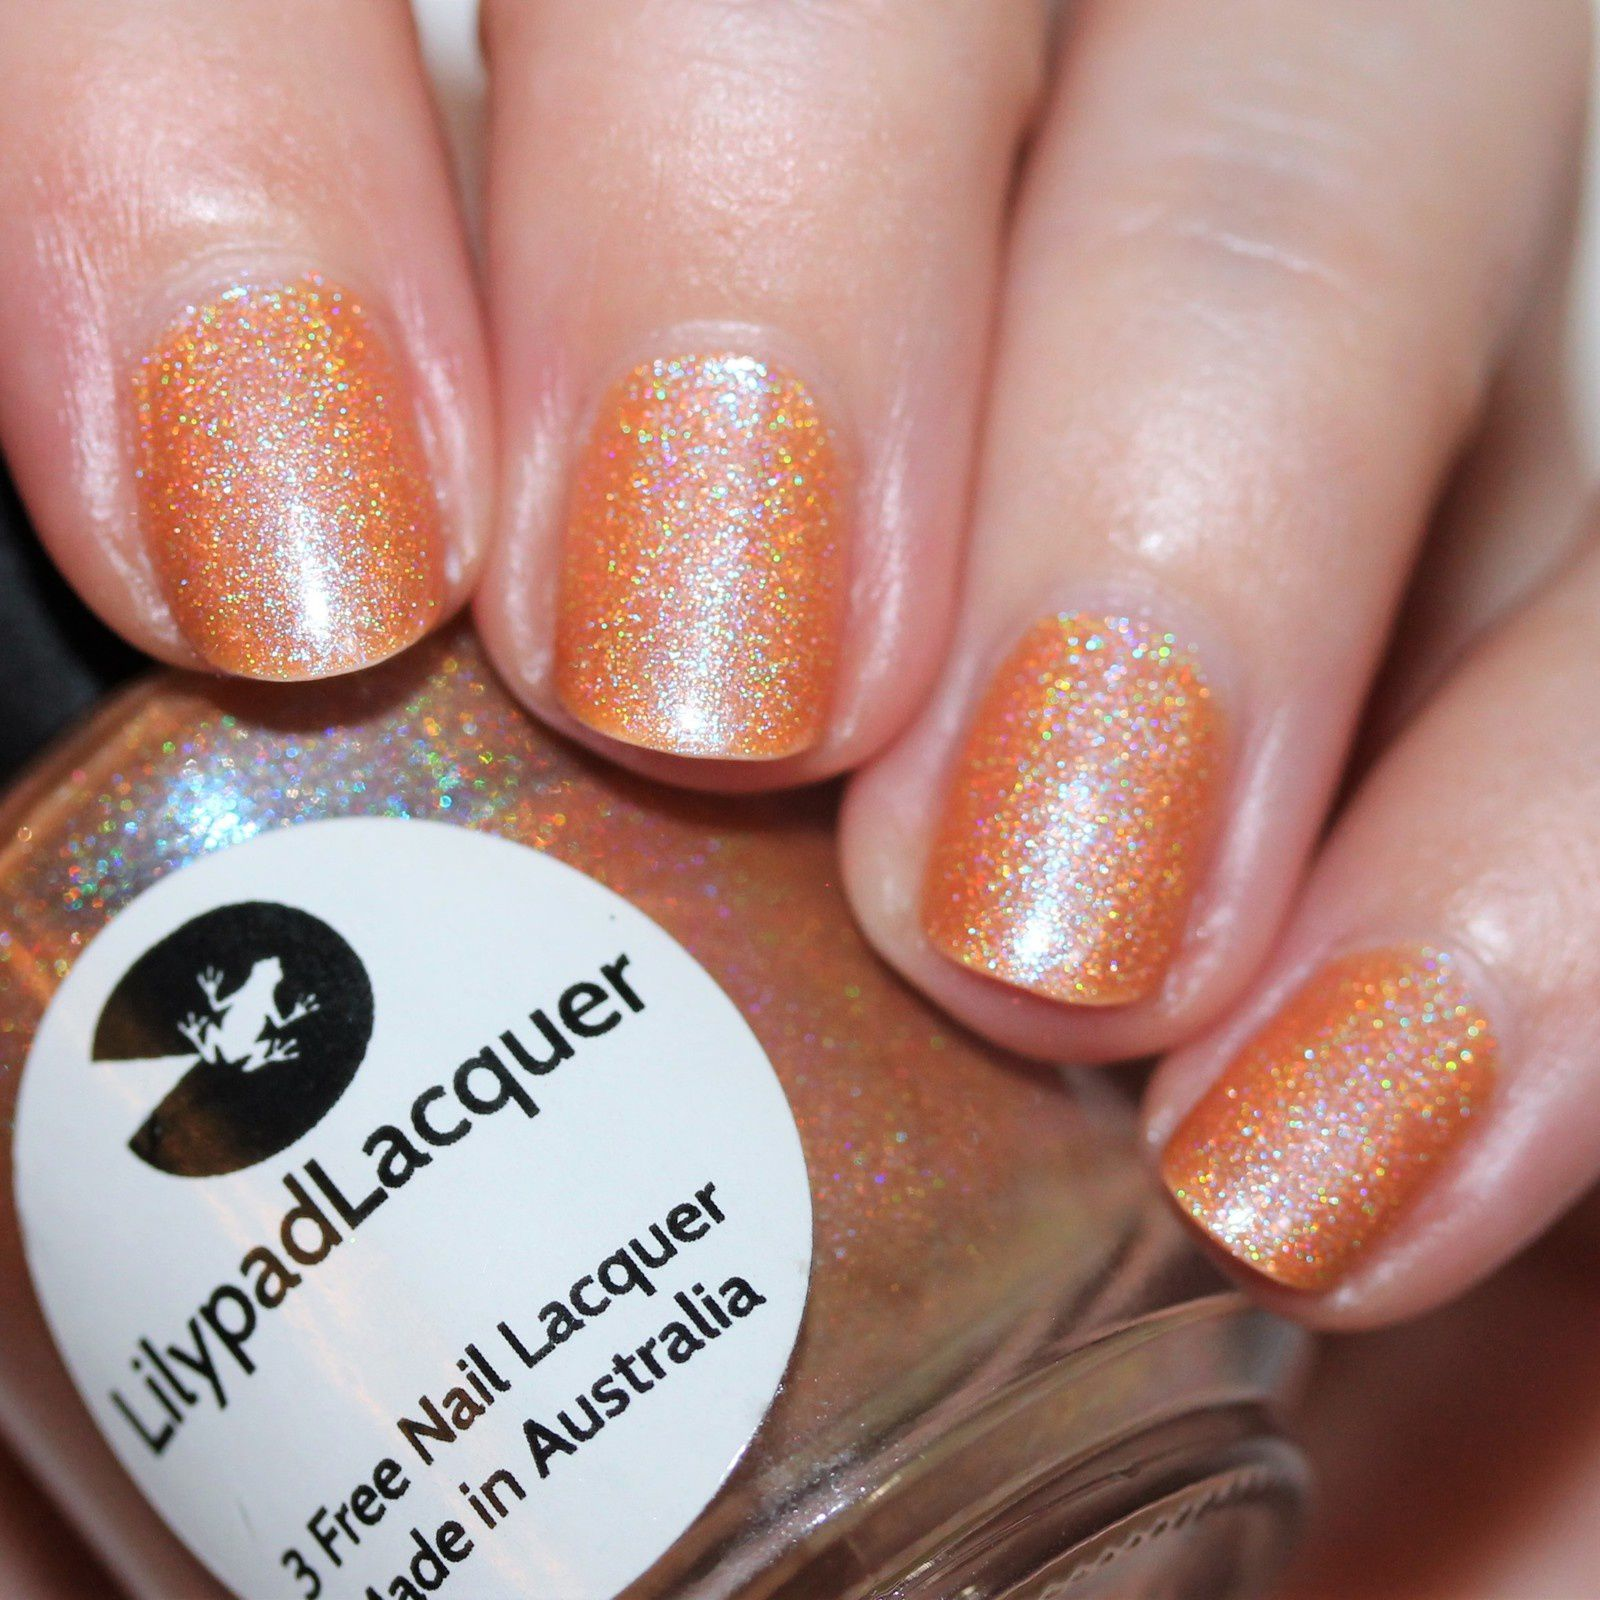 Essie Protein Base Coat / Lilypad Lacquer I'm Feeling Peachy / HK Girl Top Coat